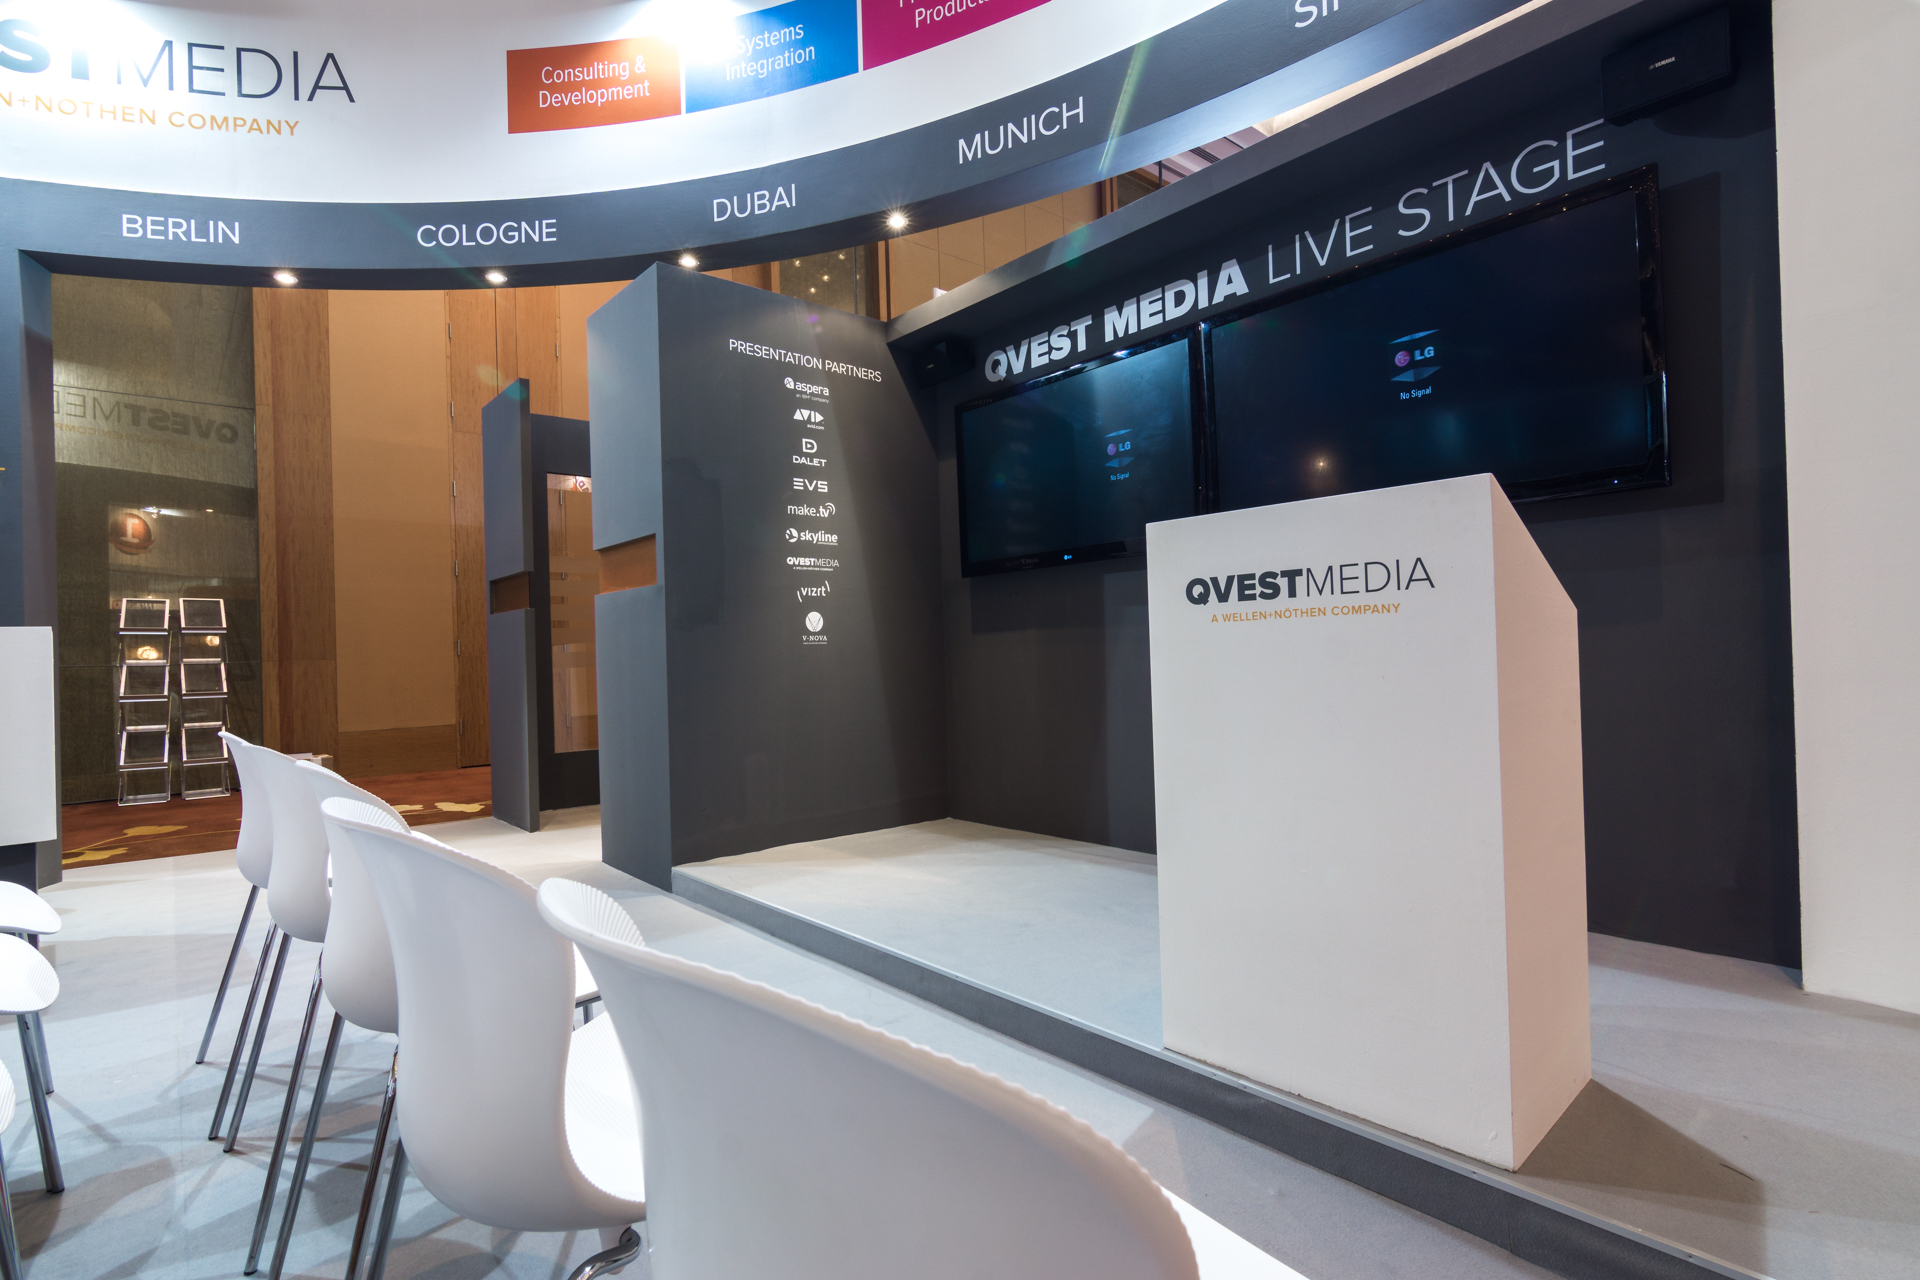 BroadcastAsia Singapore exhibition booth design company